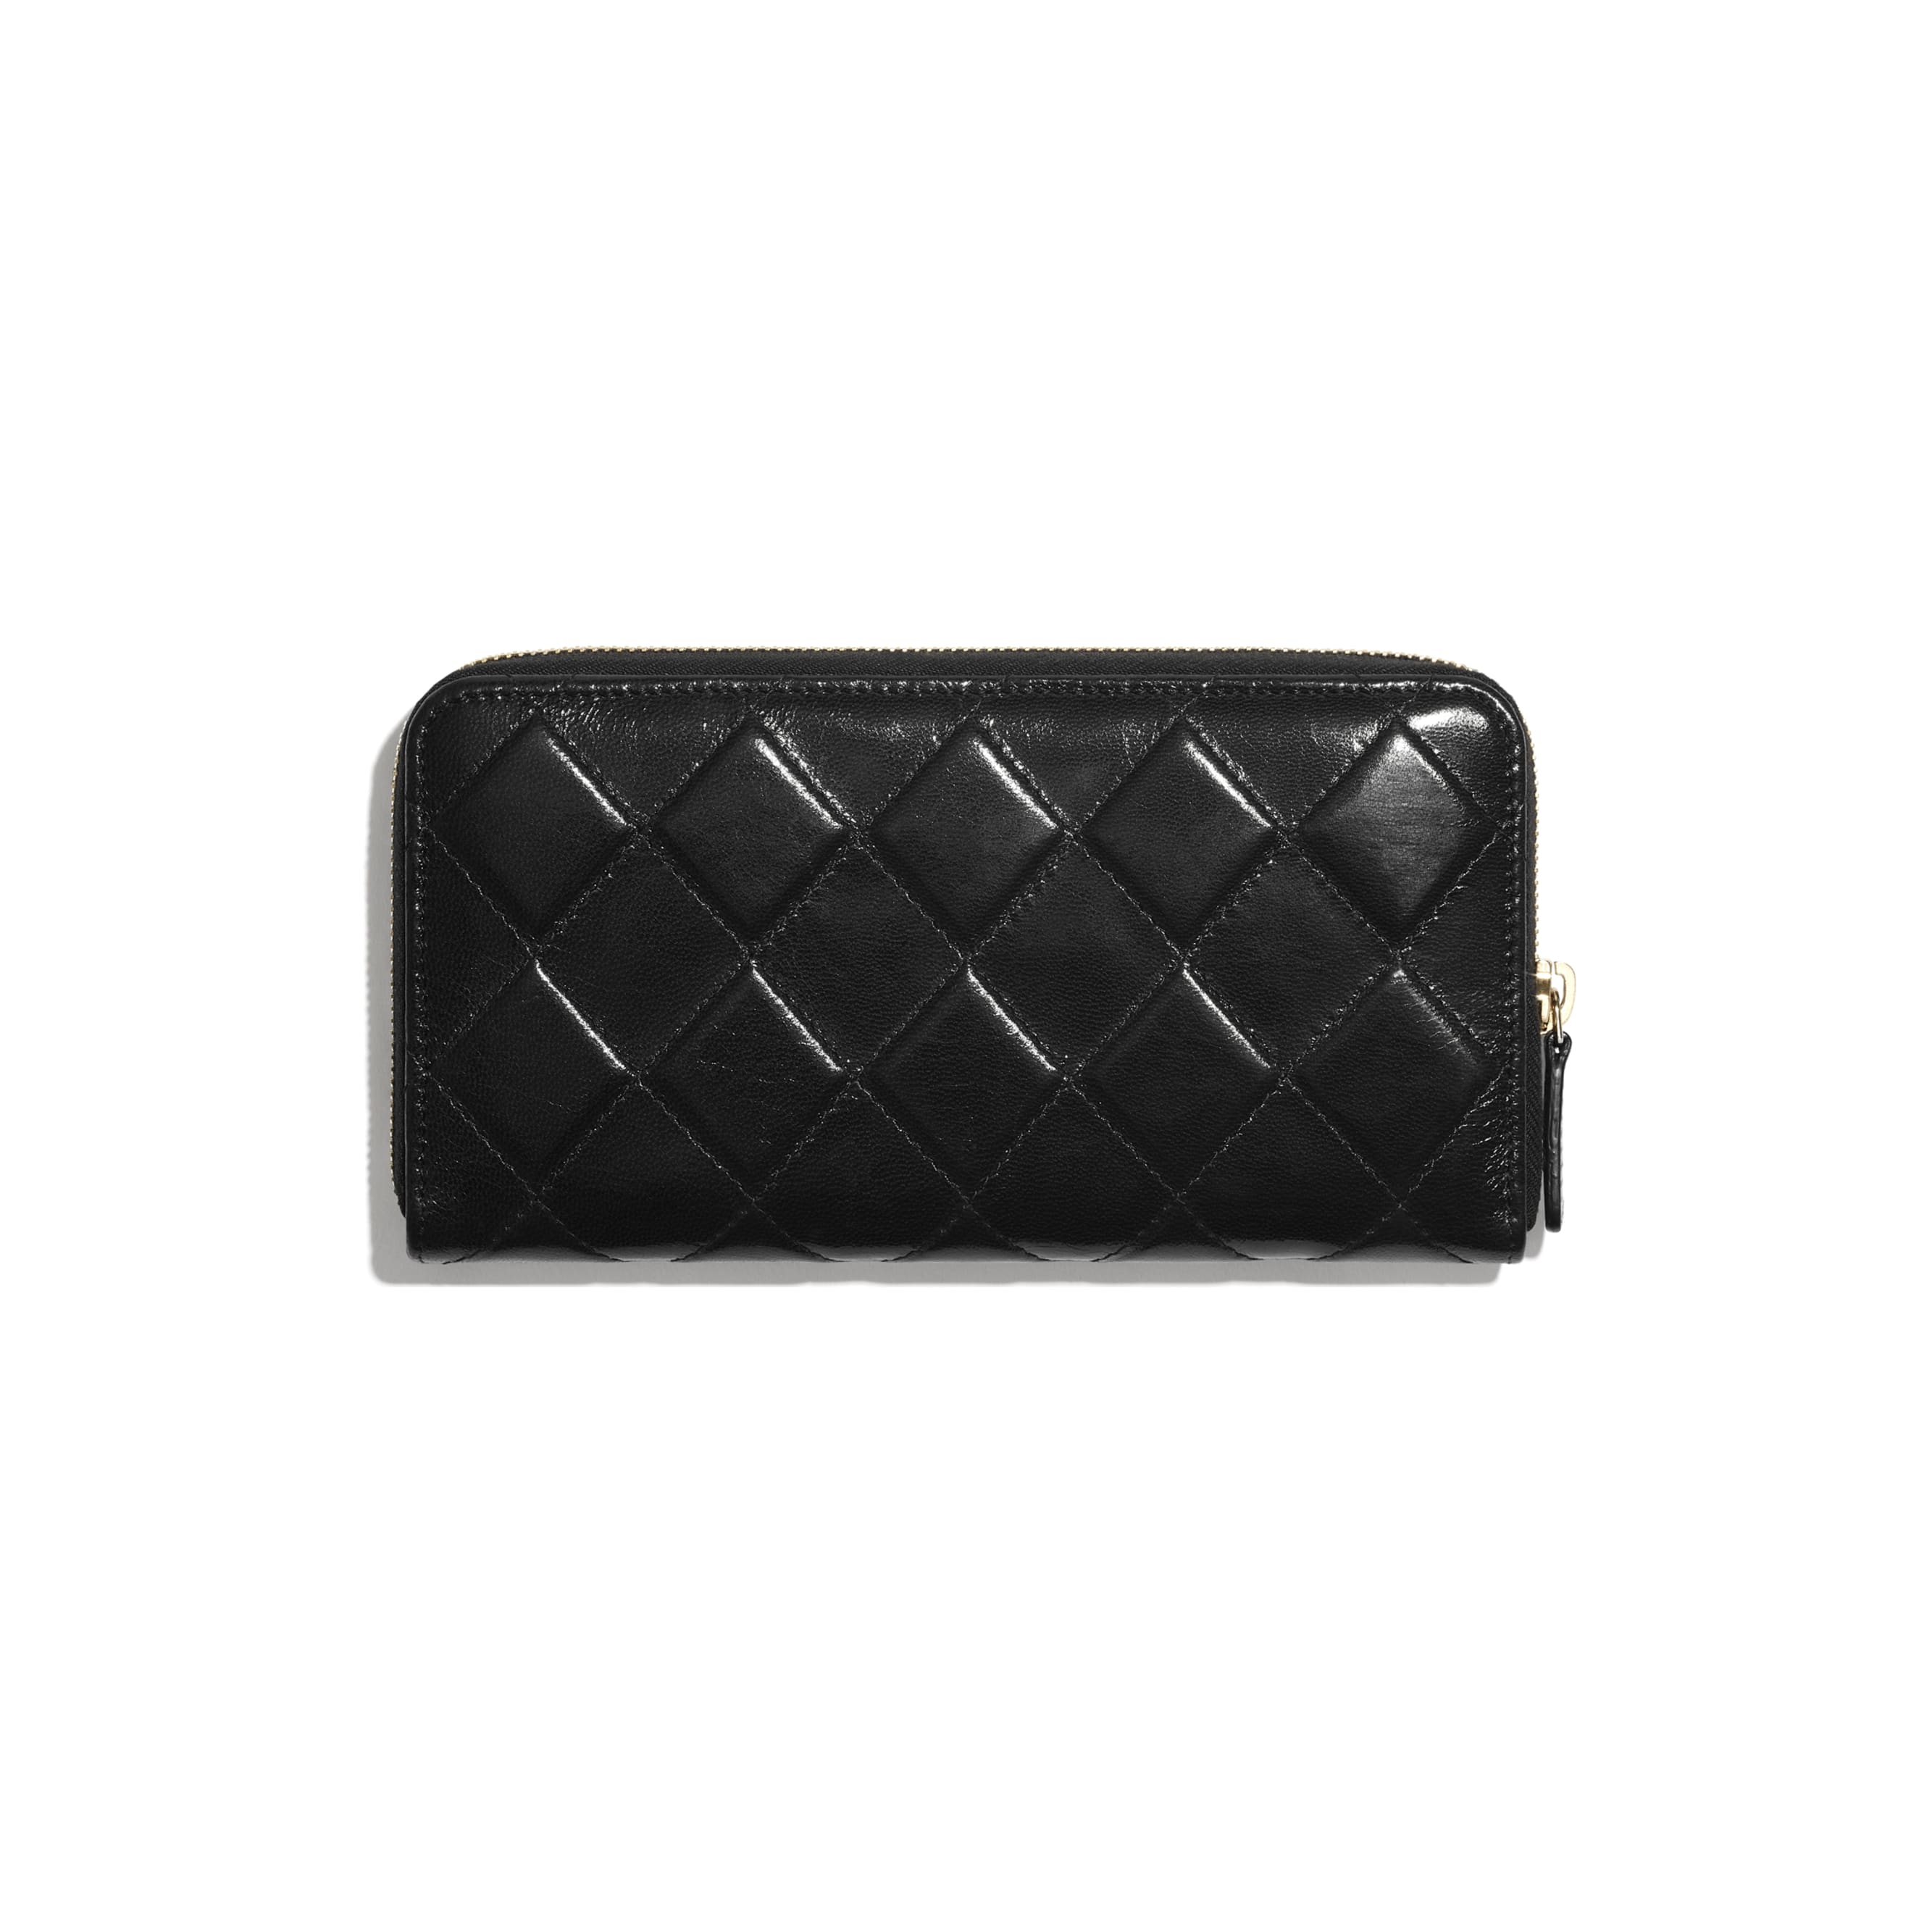 Long Zipped Wallet - Black - Shiny Crumpled Goatskin & Gold-Tone Metal - CHANEL - Alternative view - see standard sized version